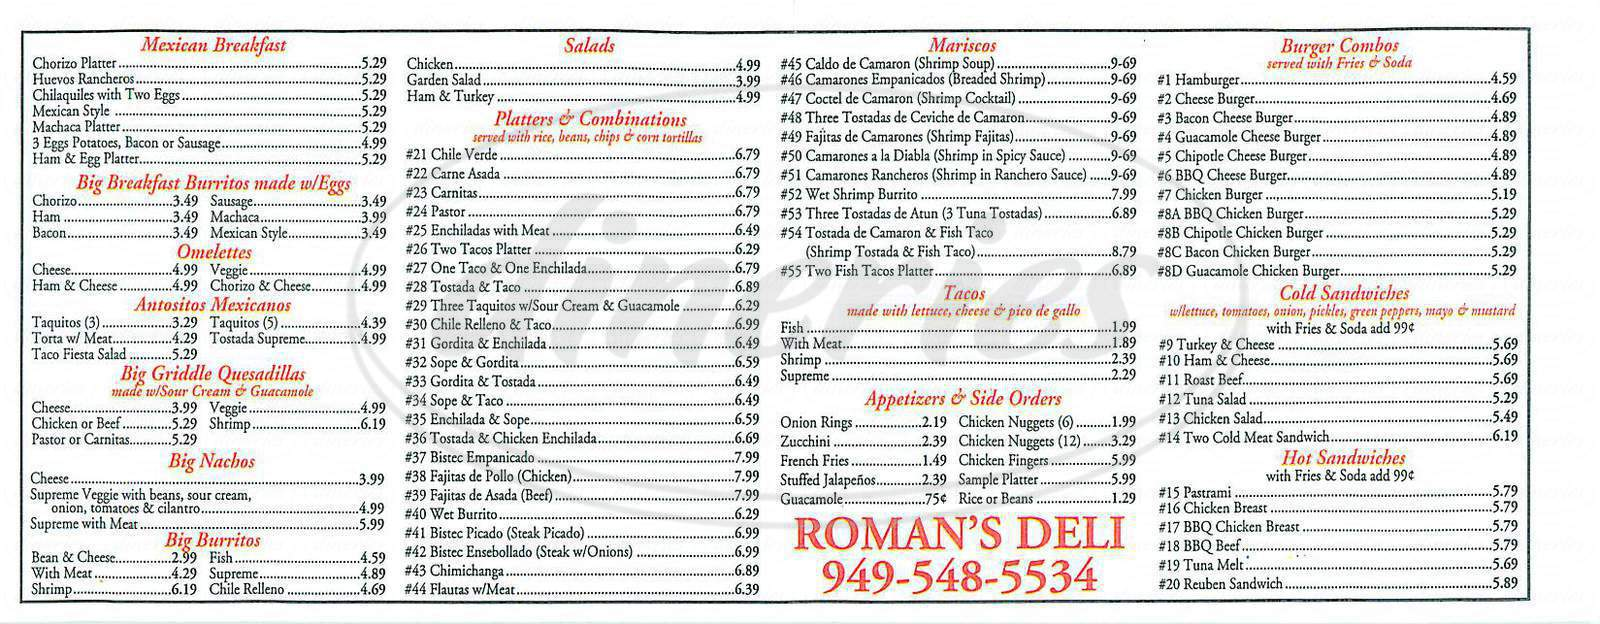 menu for Roman's Deli